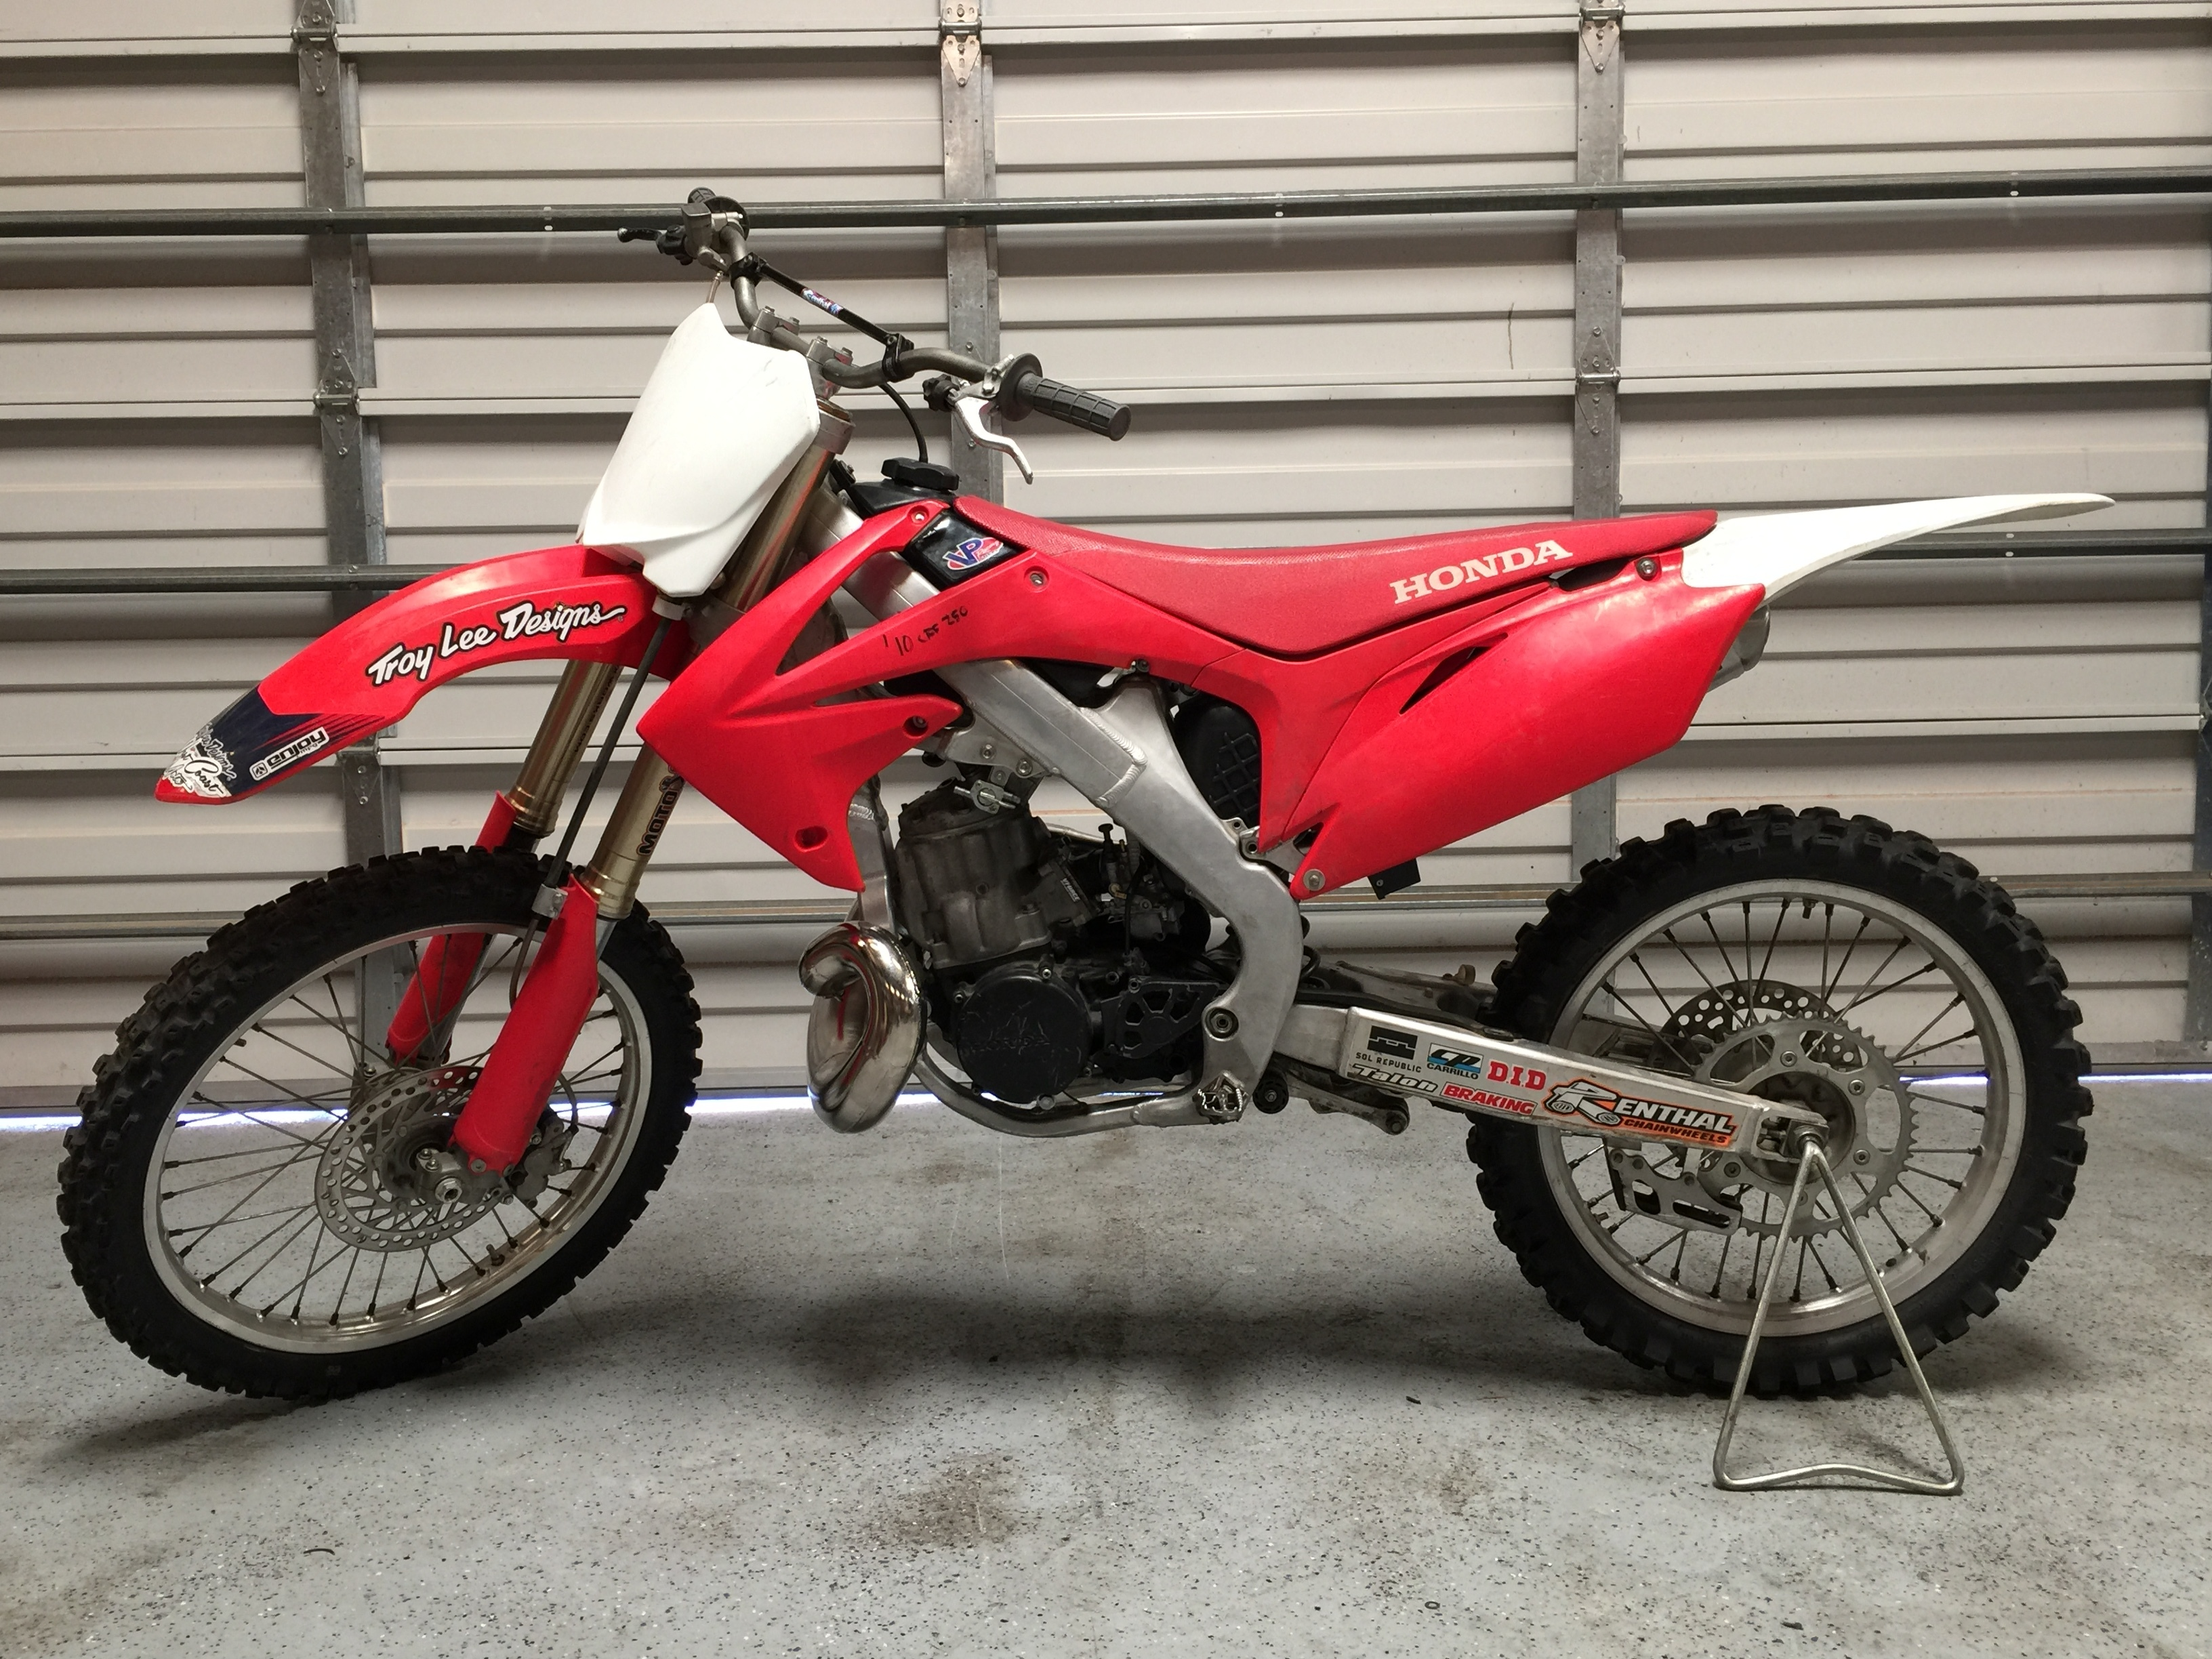 Complete aluminum frame conversion kit for 10-13 CRF250R & 09-12 CRF450R to  CR500 engine